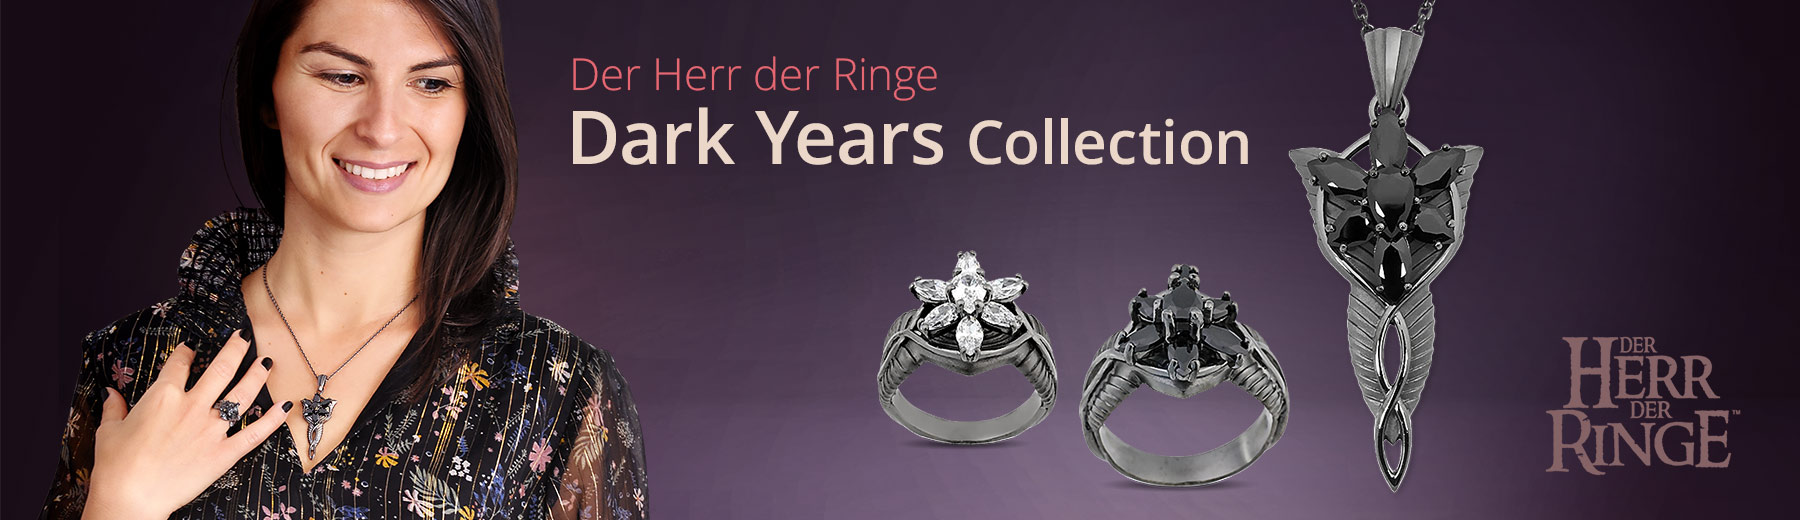 Dark Years Collection